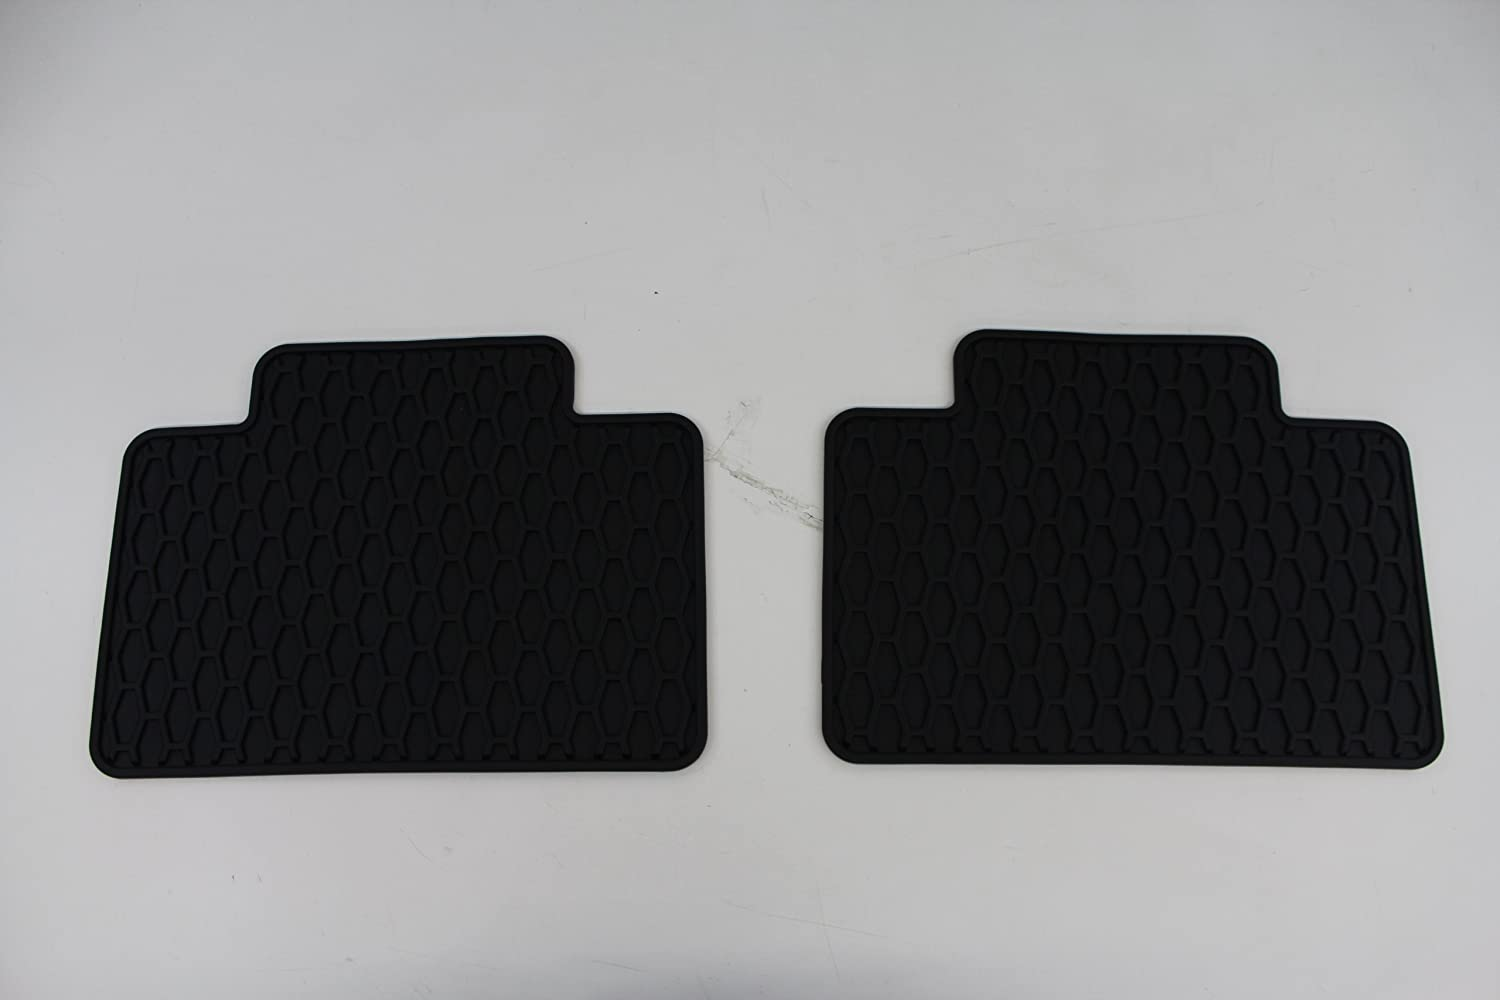 2014 scion xb weathertech floor mats - Amazon Com Genuine Scion Accessories Pu320 52112 00 All Weather Floor Mat Automotive